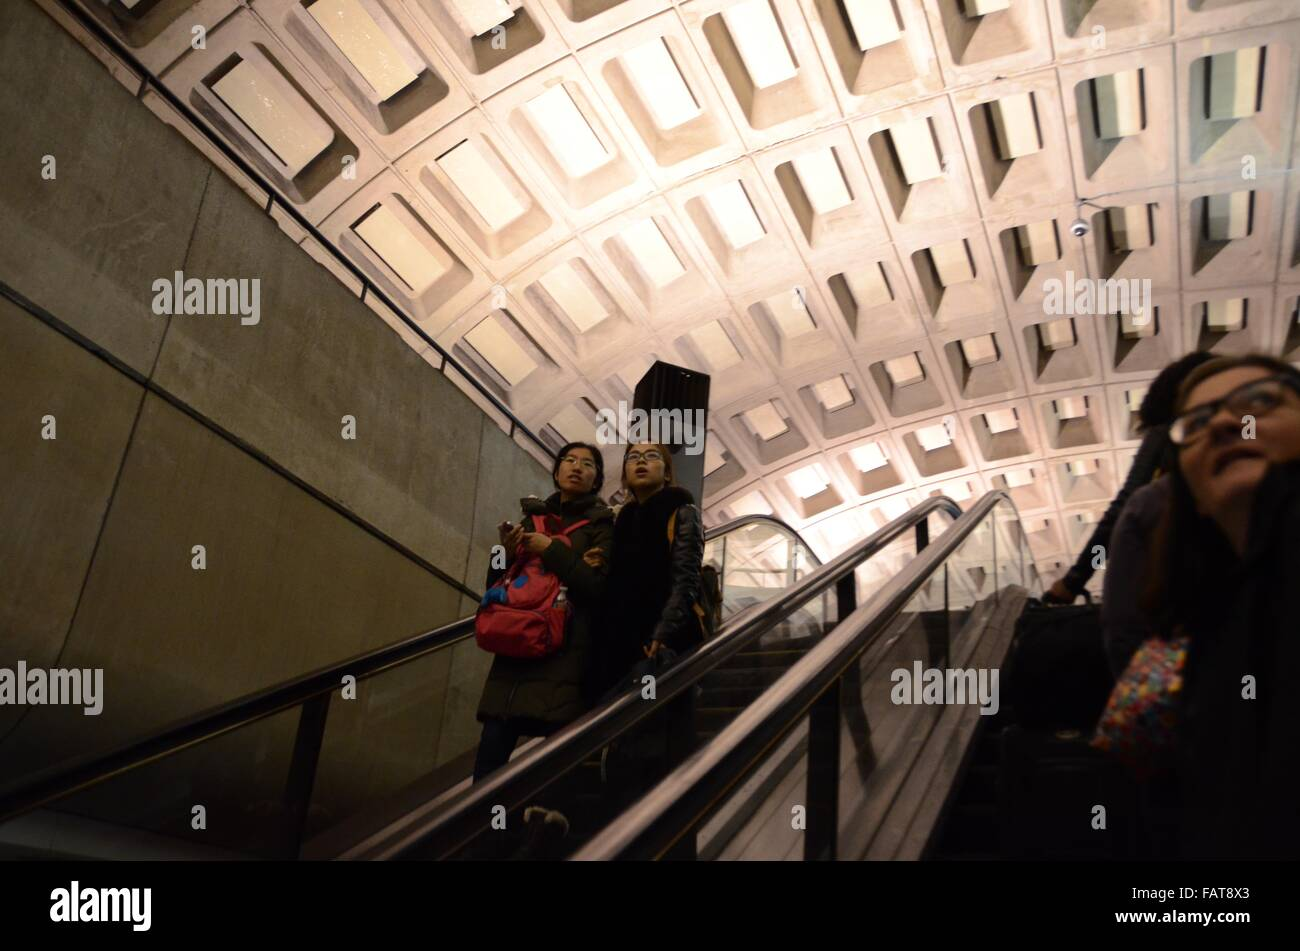 tourists washington metro trains ceilings usa Stock Photo